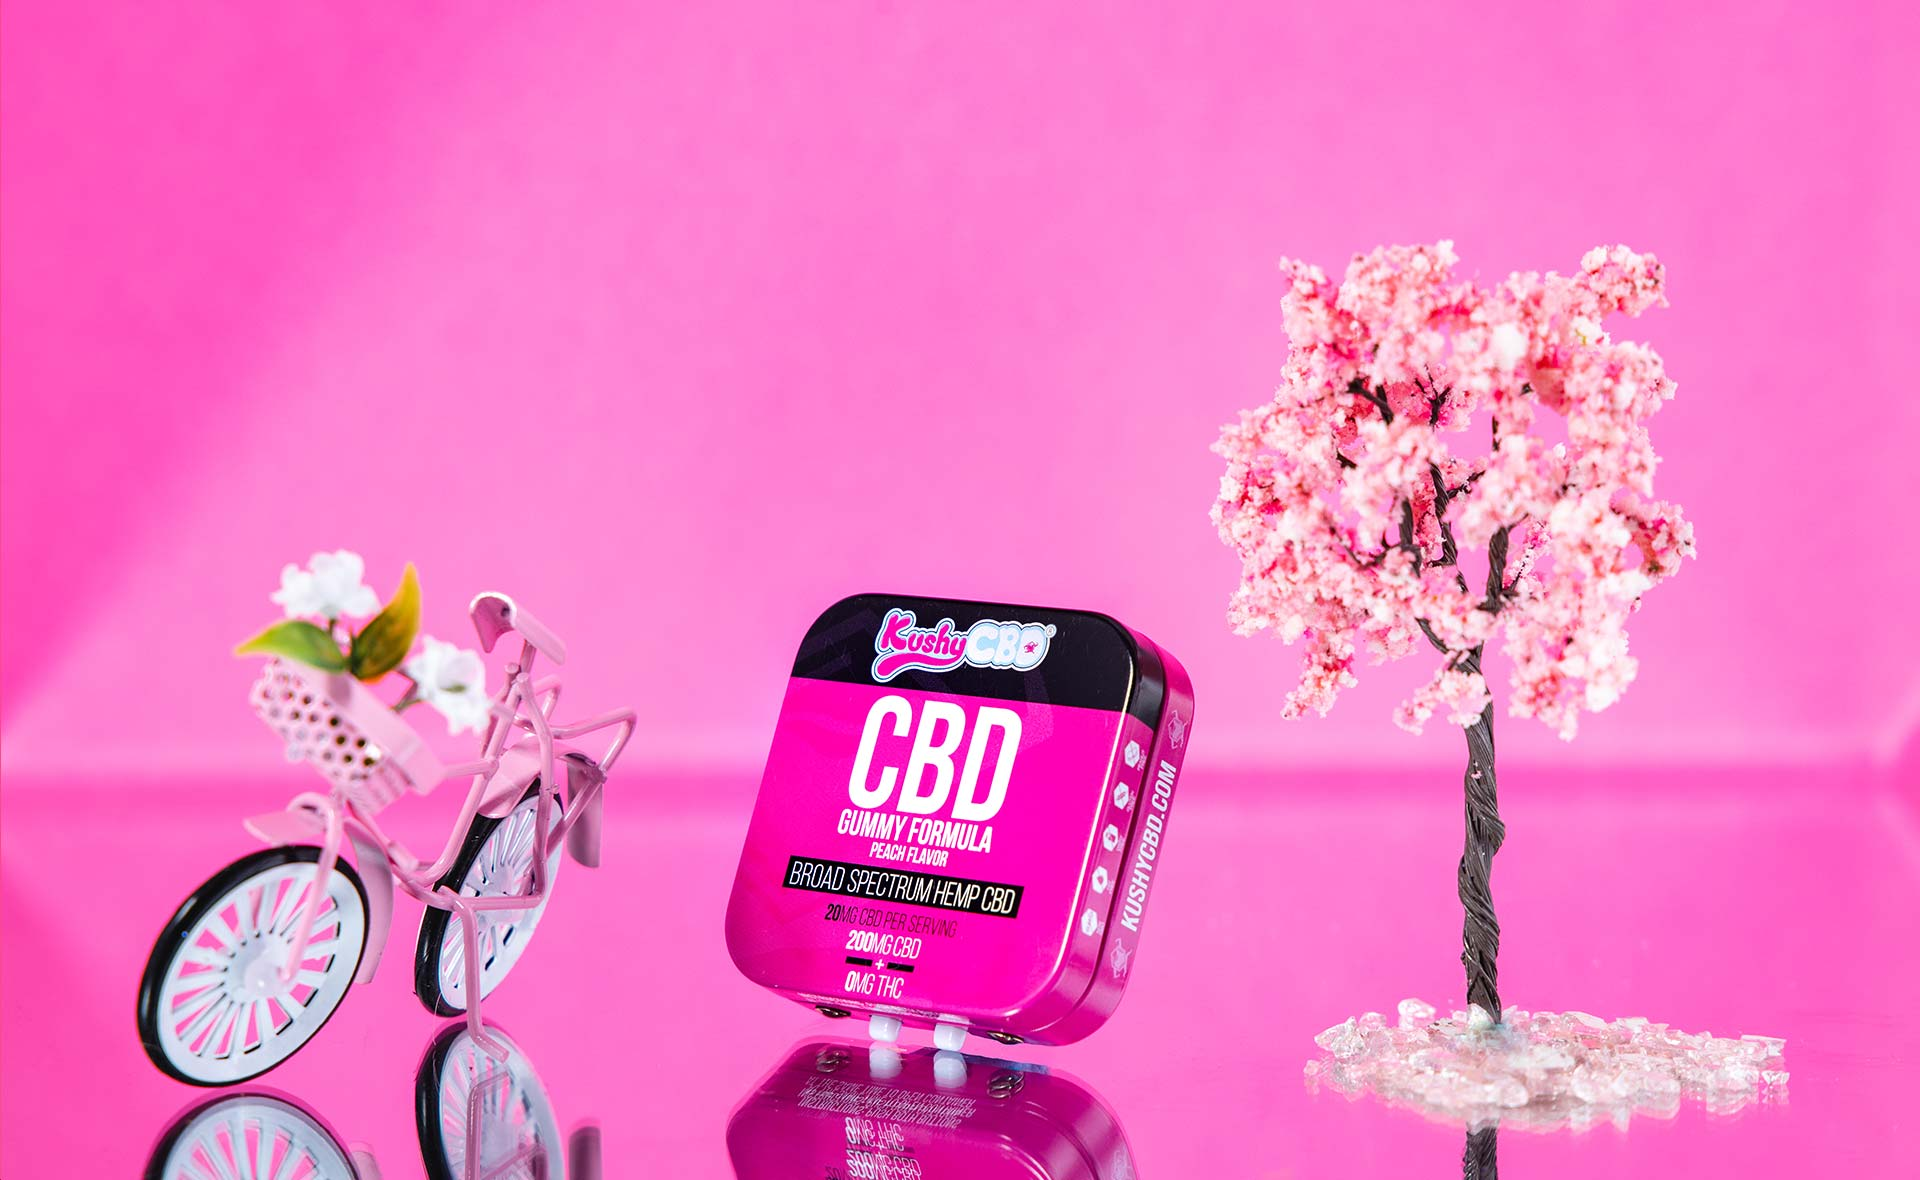 CBD Product Photography by Results Imagery, Creative In Studio Product Photo